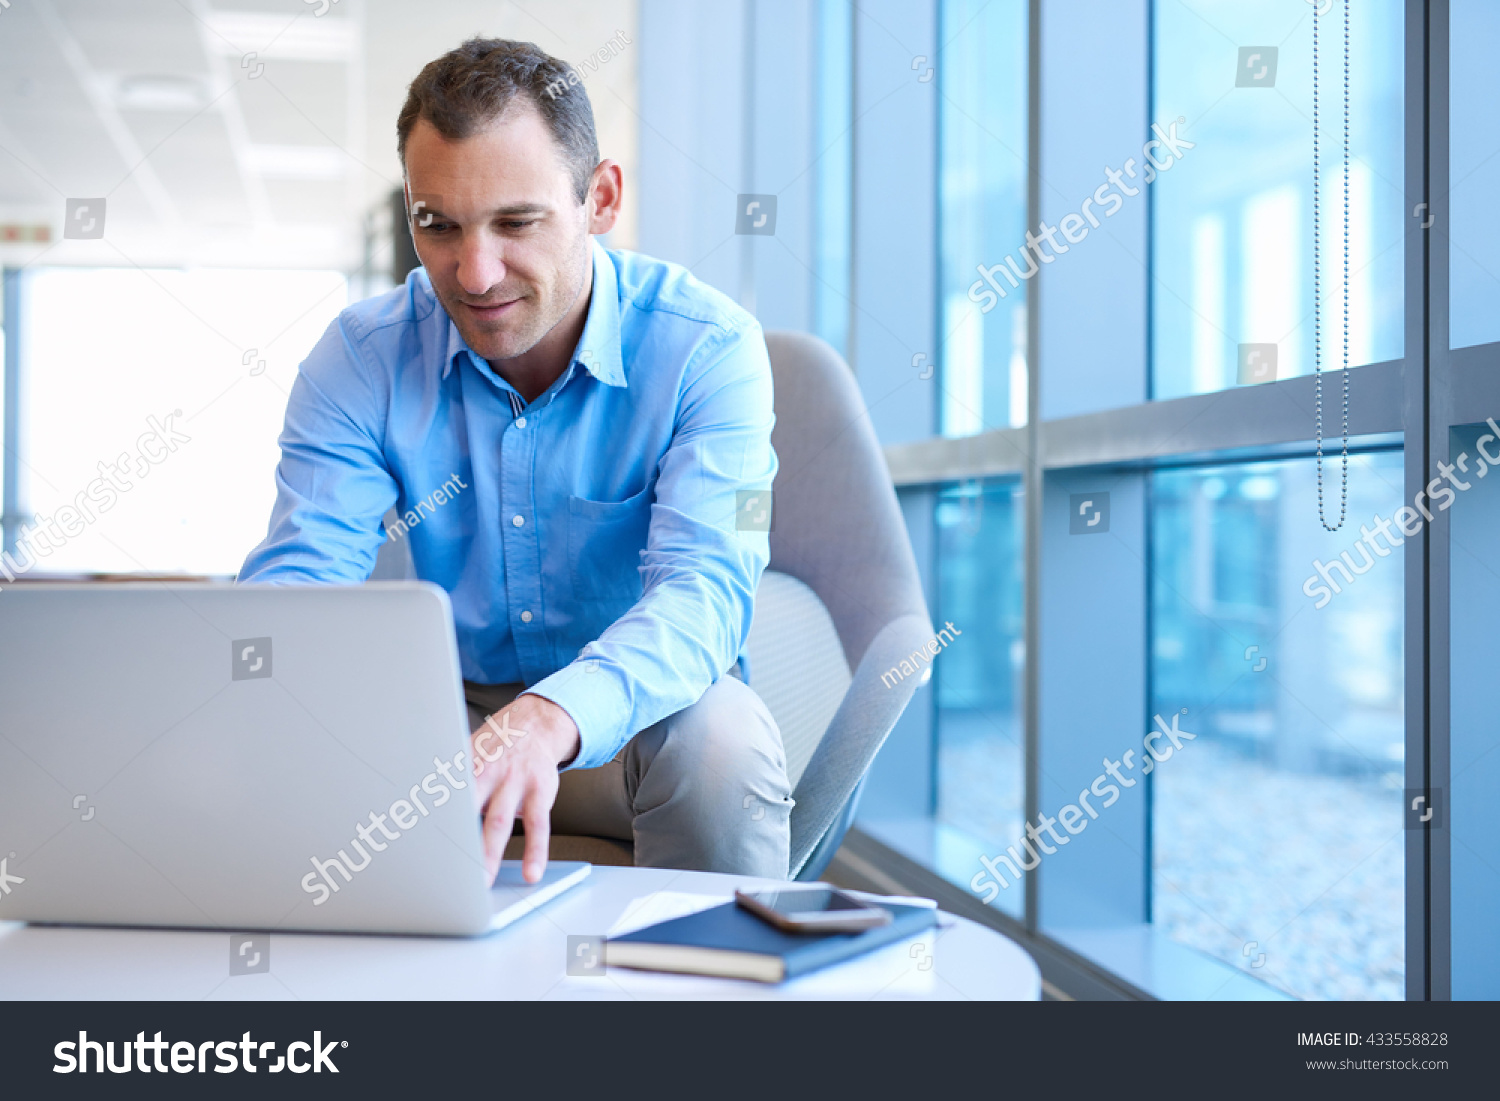 bright modern office space with large windows preview save to a lightbox bright modern office space